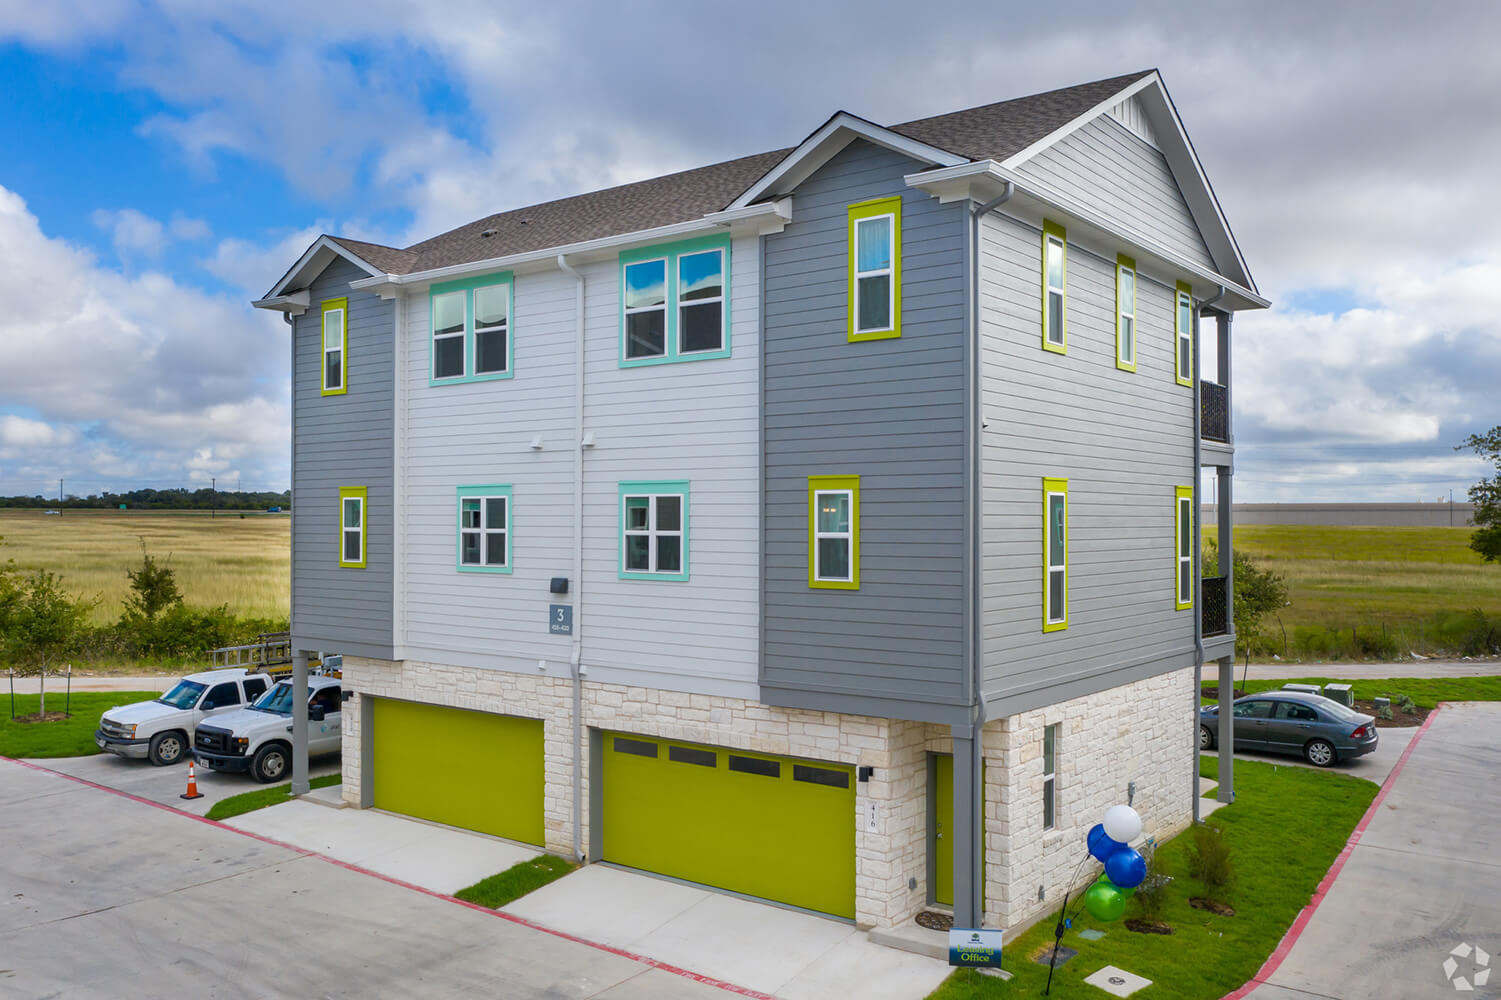 Trailside Oaks Townhomes Exterior Photo